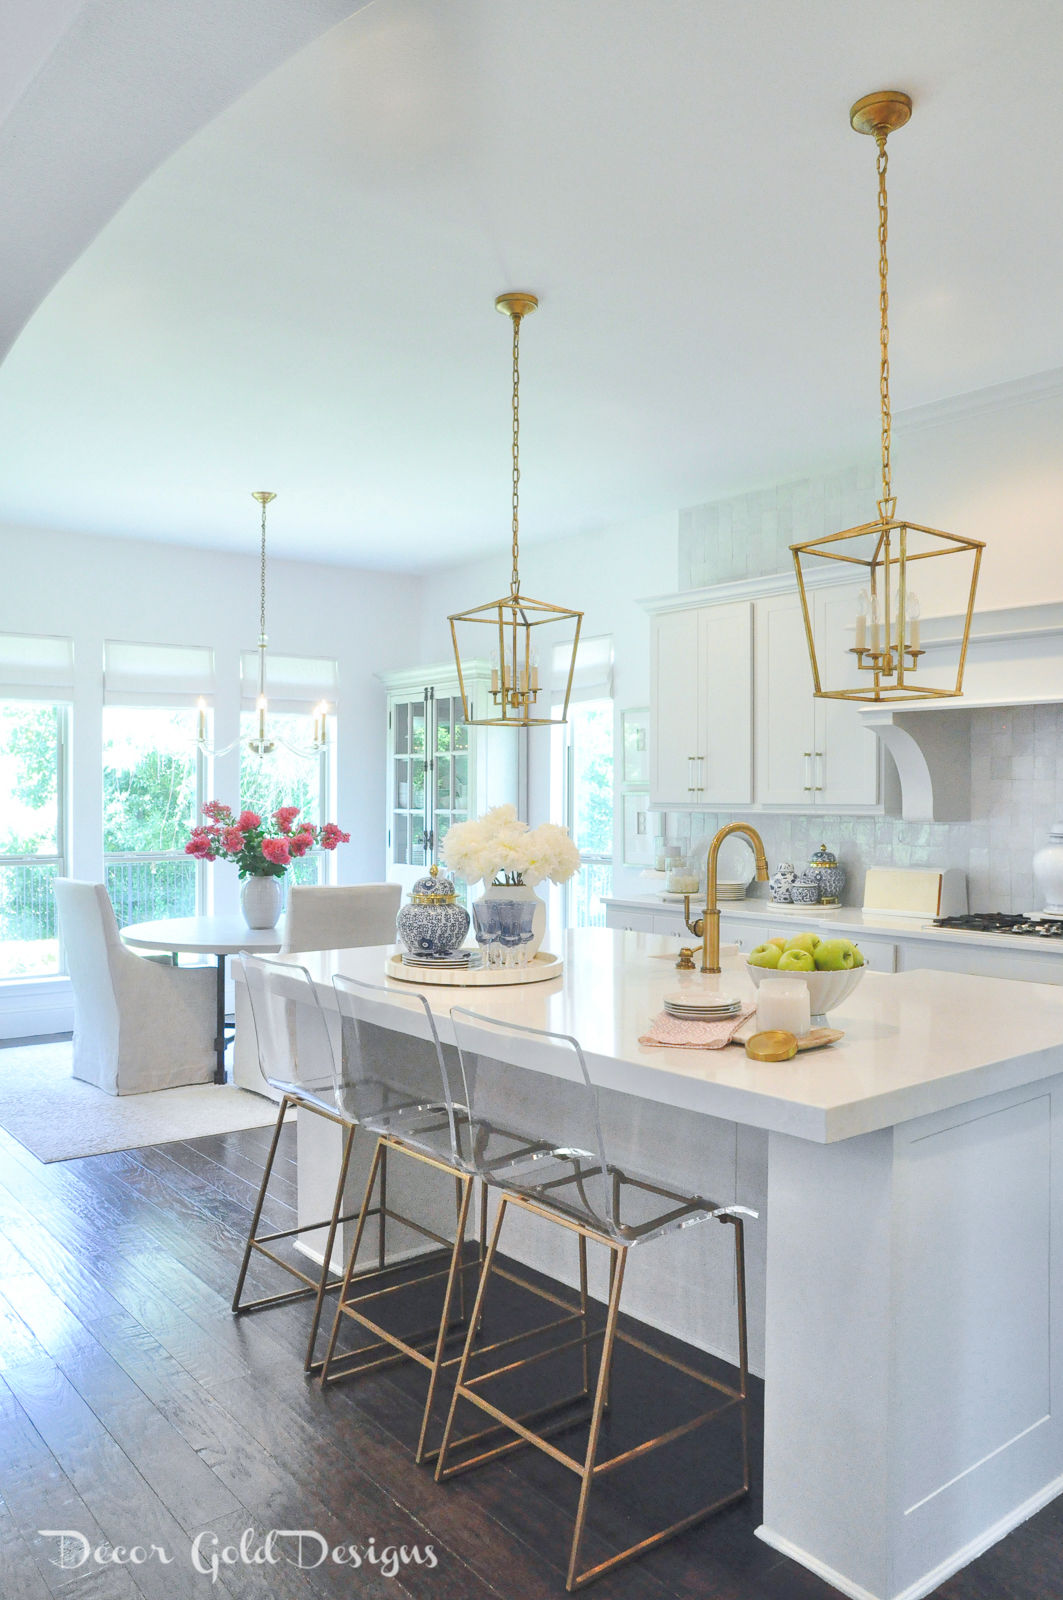 Summer home tour kitchen blue white decor